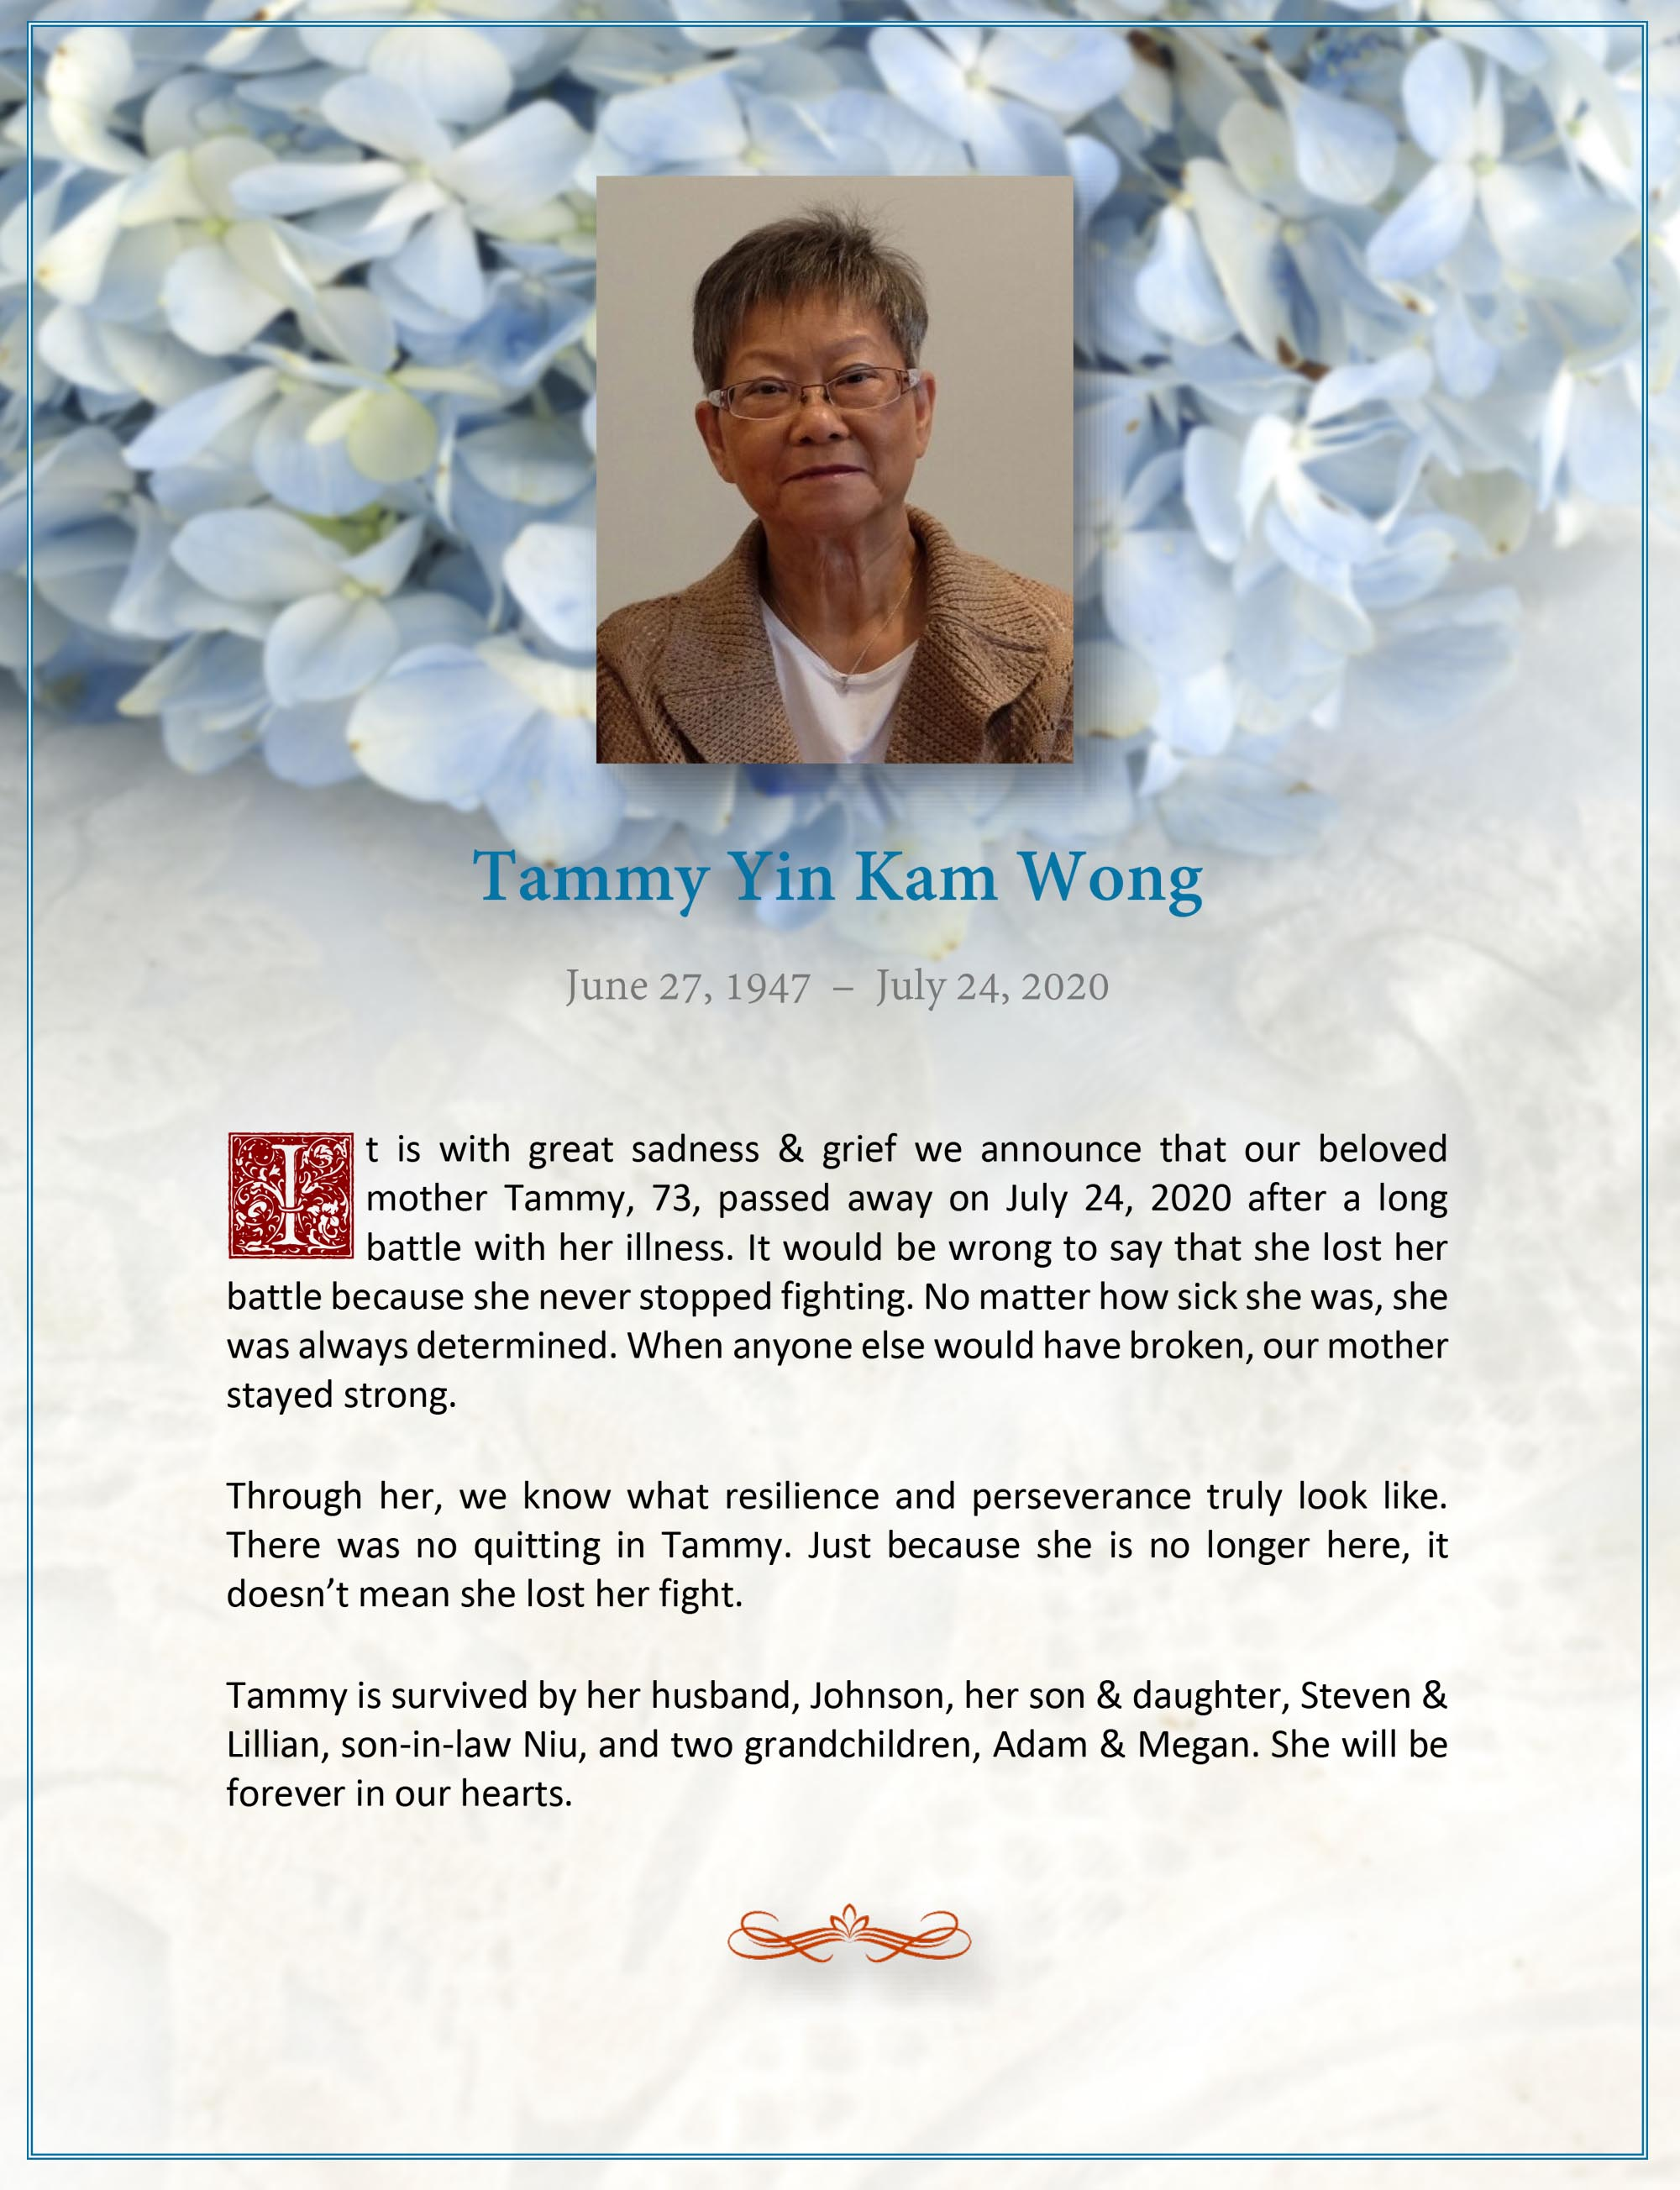 Obituary for Tammy Yin Kam Wong